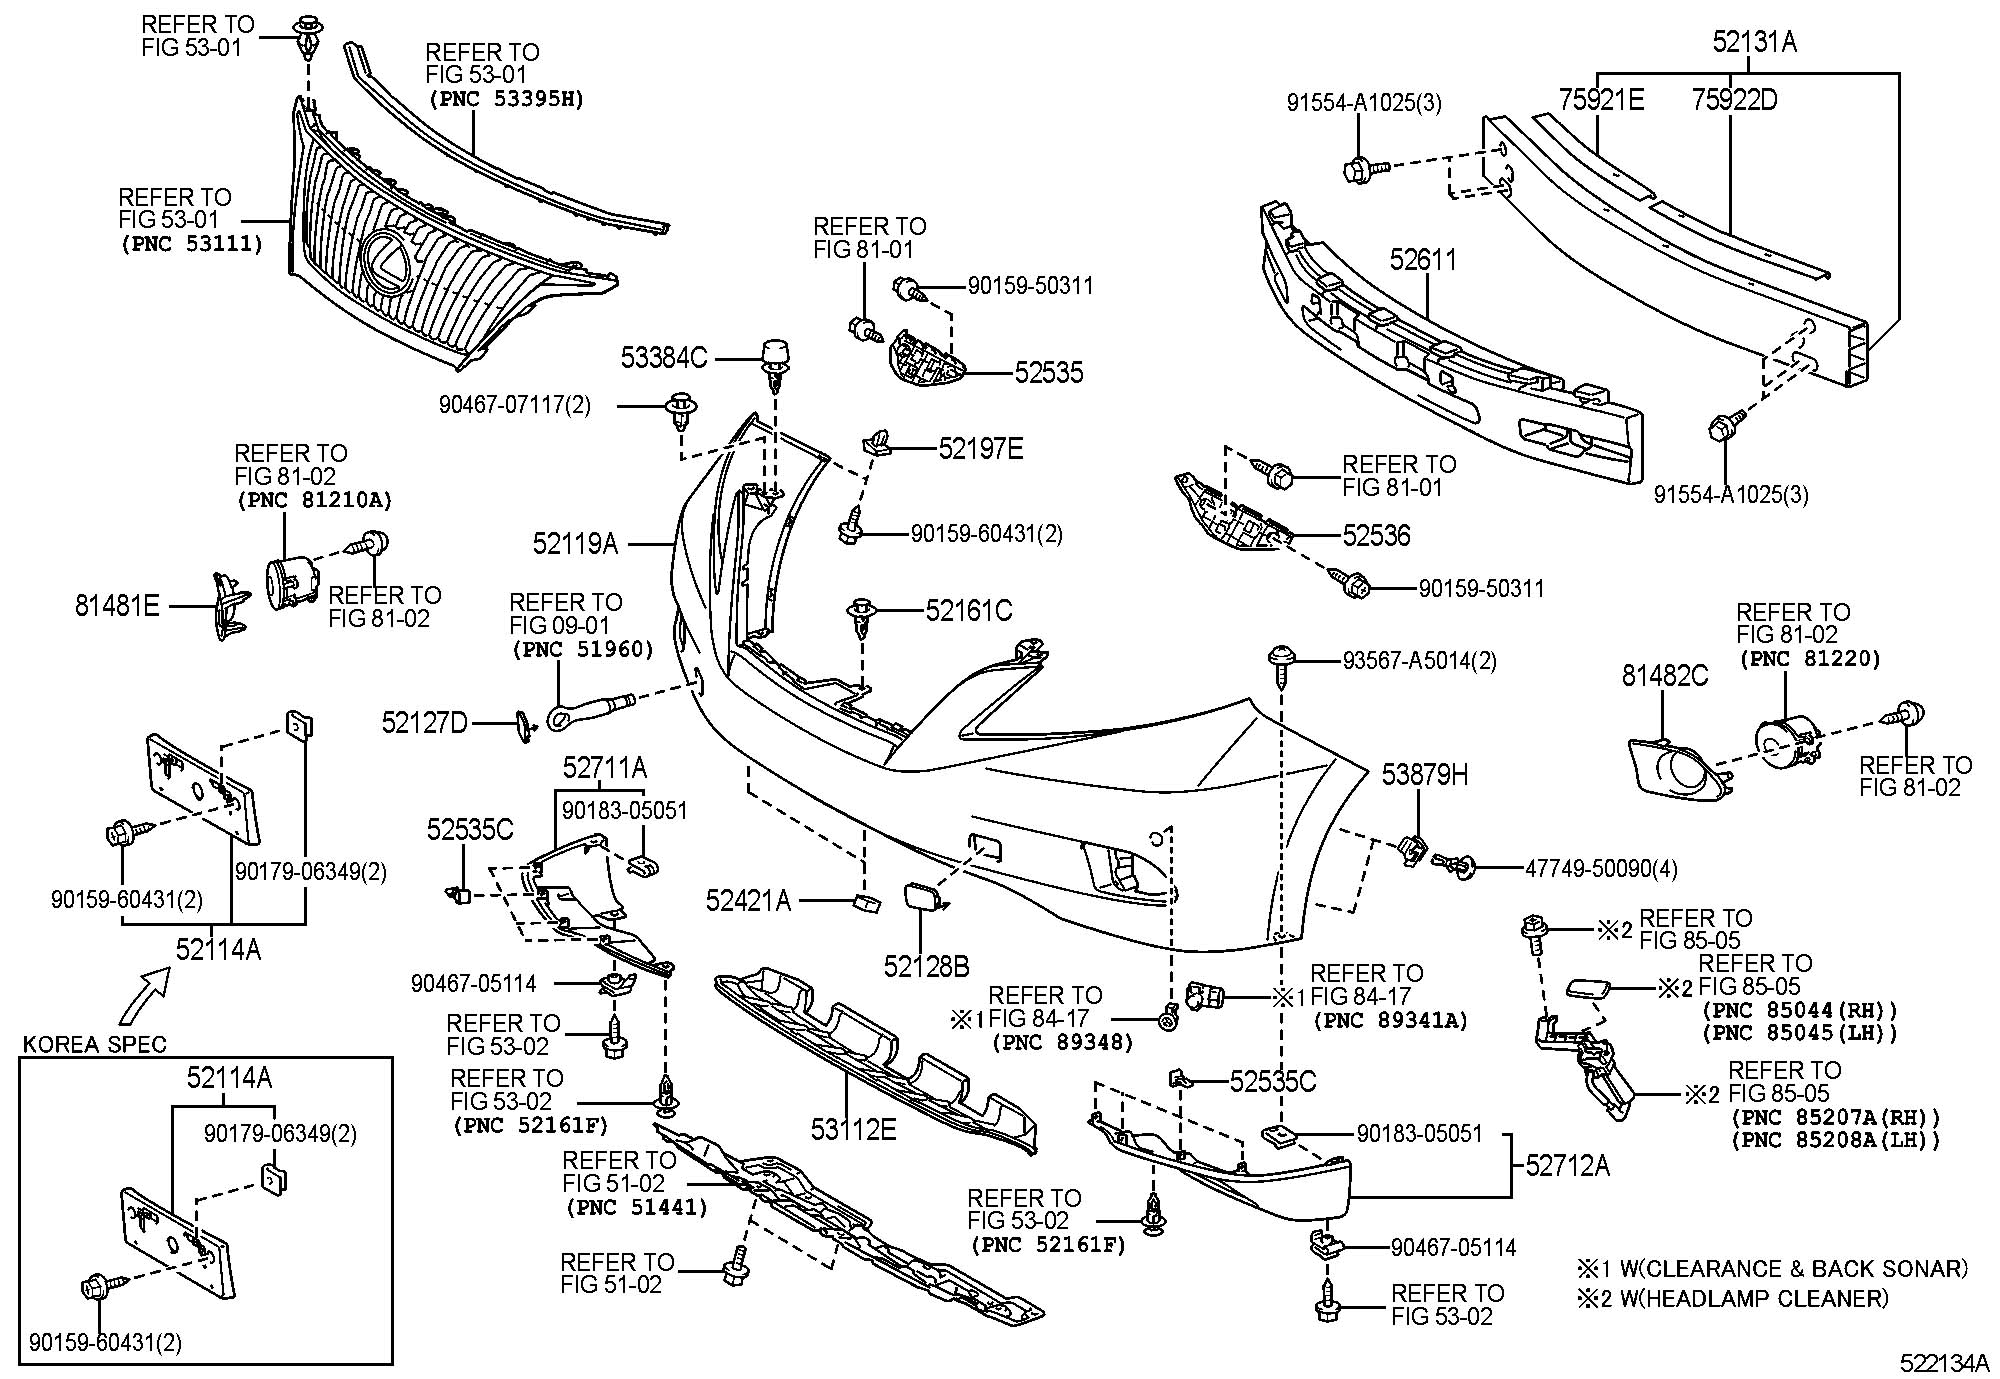 honda rancher 350 carburetor hose diagram honda es 350 wiring diagram es discover your wiring diagram collections on honda rancher 350 carburetor hose